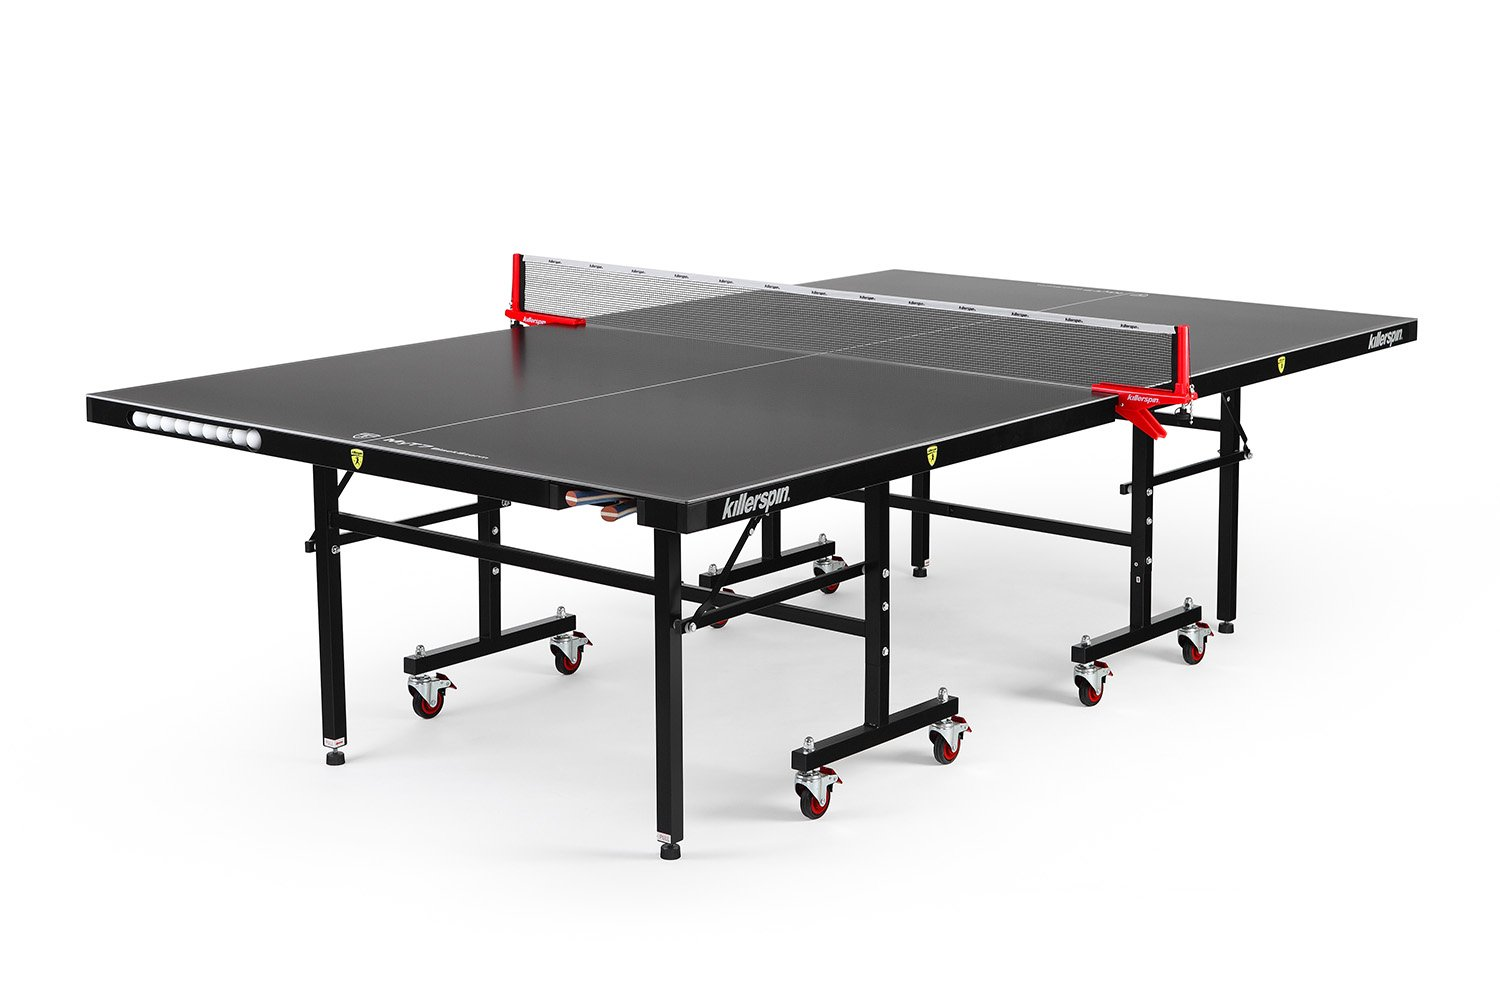 Killerspin MyT7 BlackStorm Table Tennis Table - Black Pocket Outdoor Ping Pong Table with Playback Position and Quick Assembly